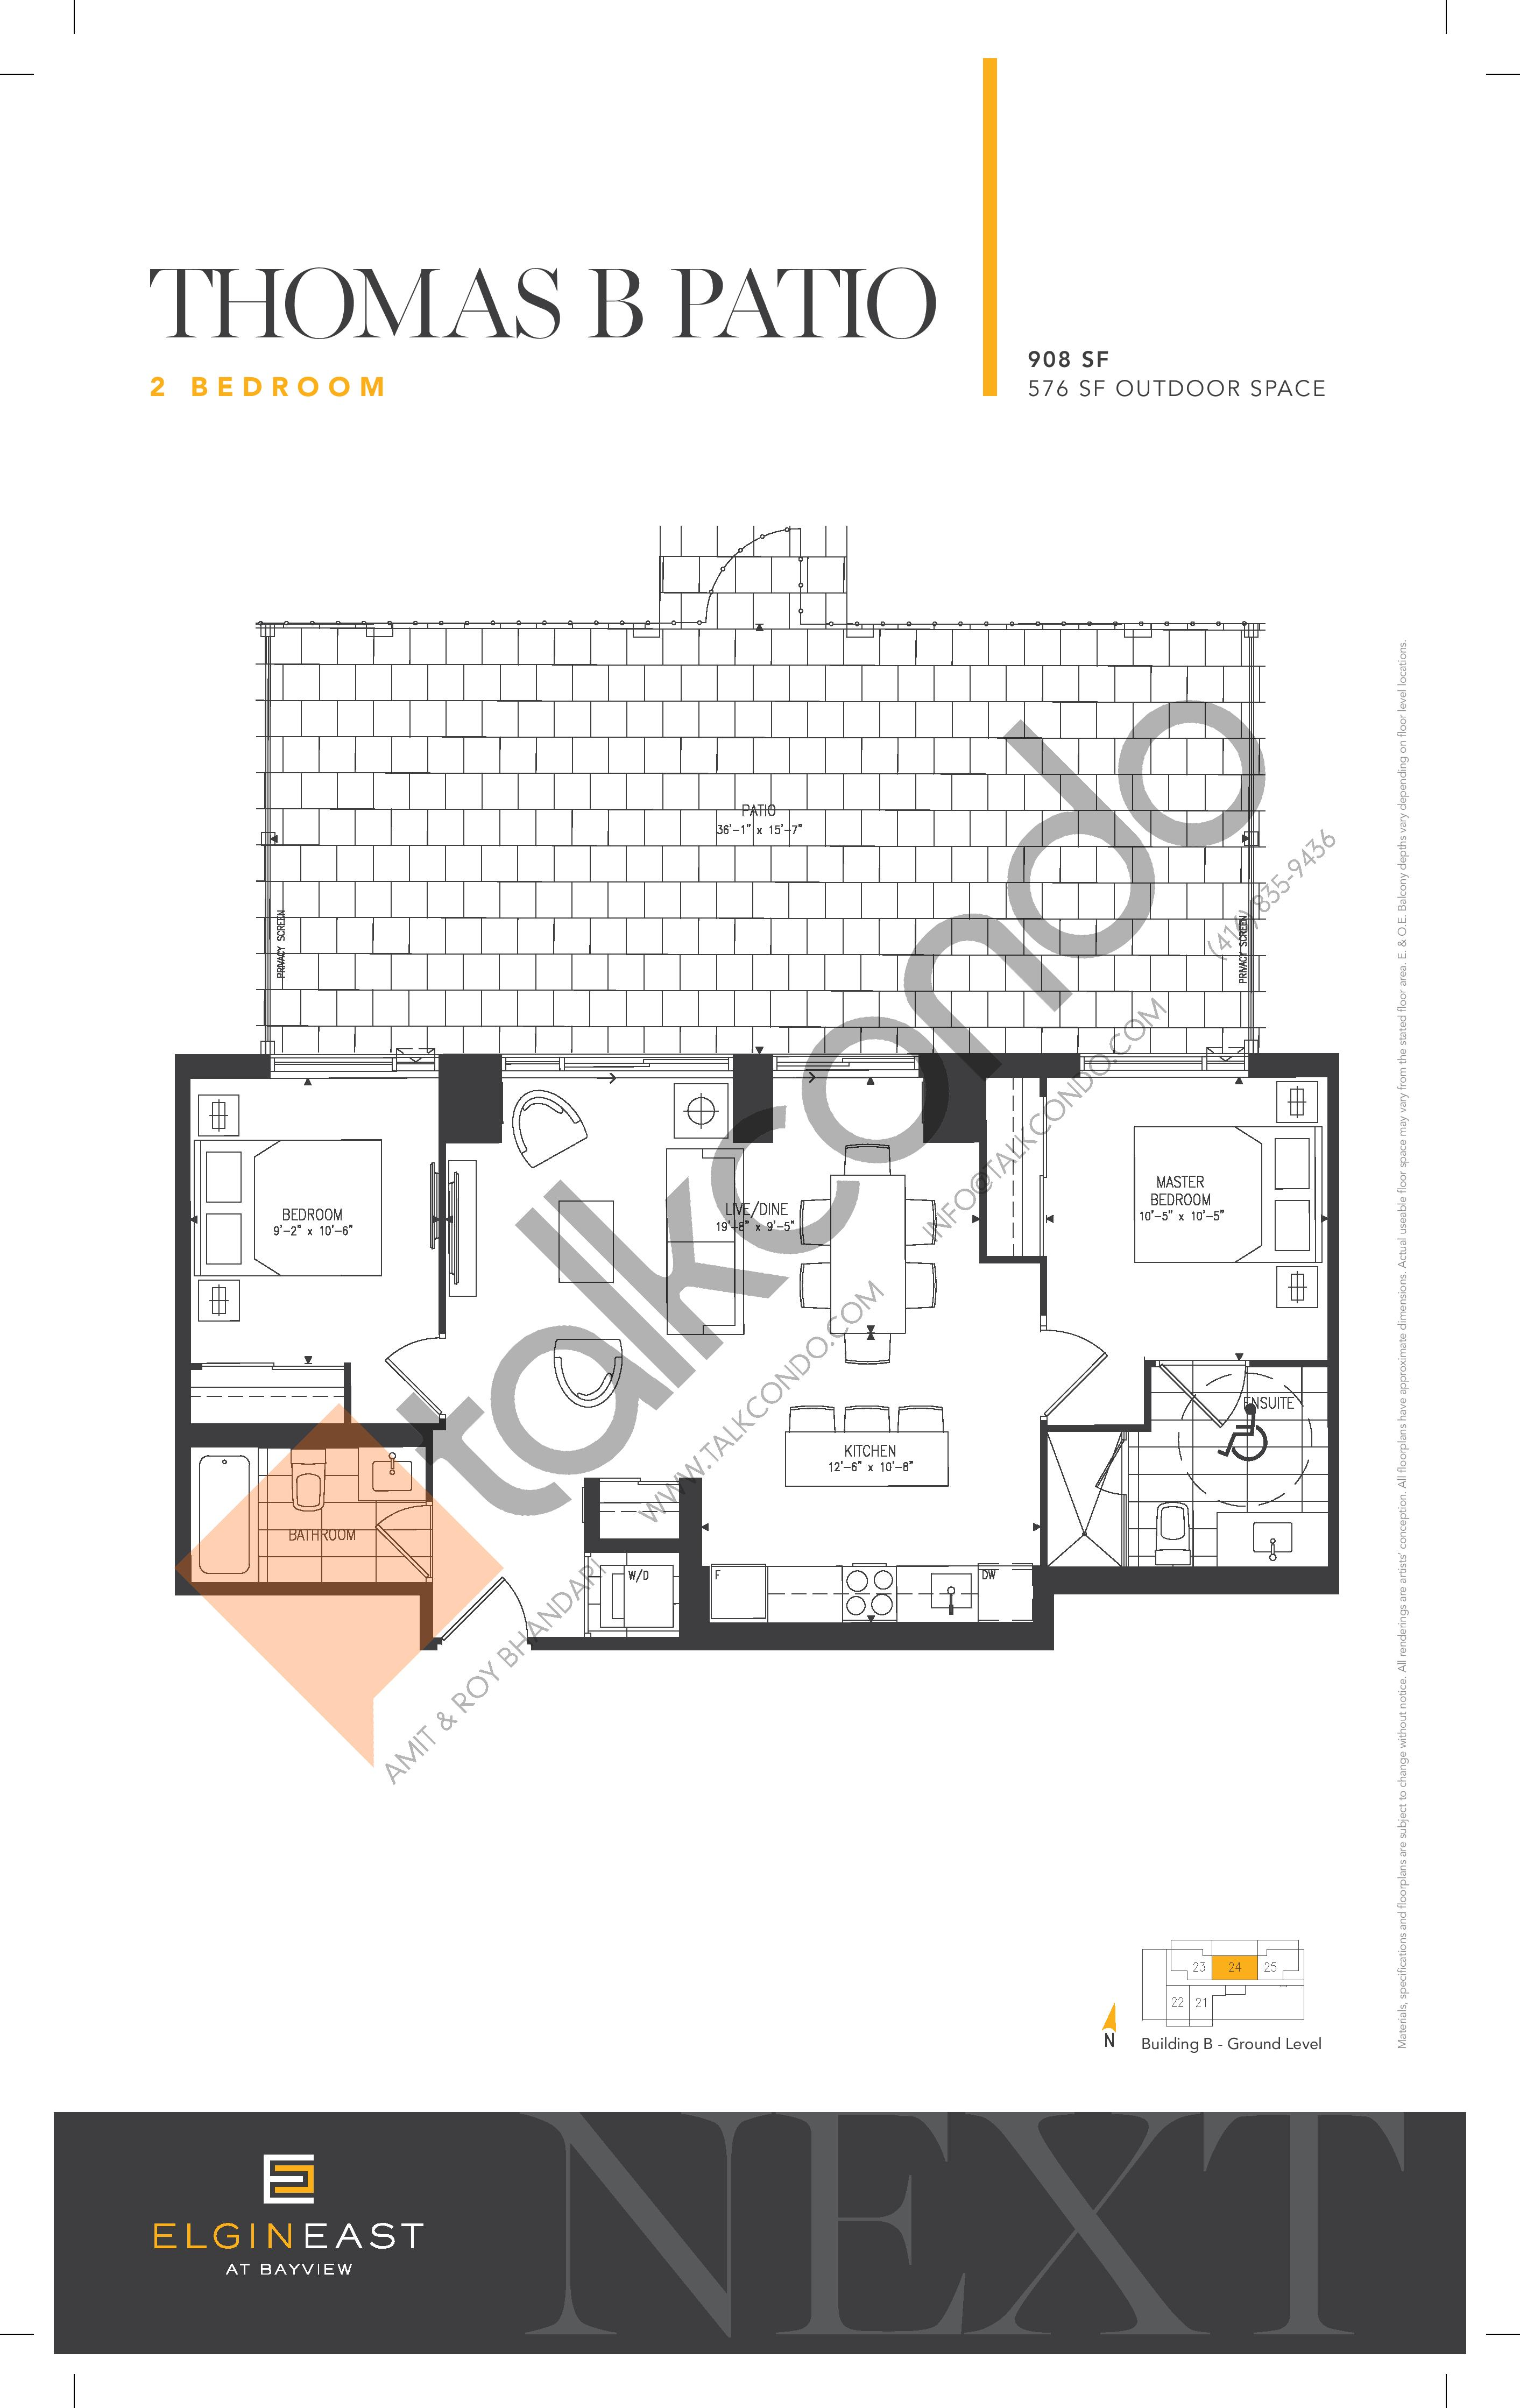 Thomas B Patio Floor Plan at NEXT - Elgin East Phase 2 Condos - 908 sq.ft